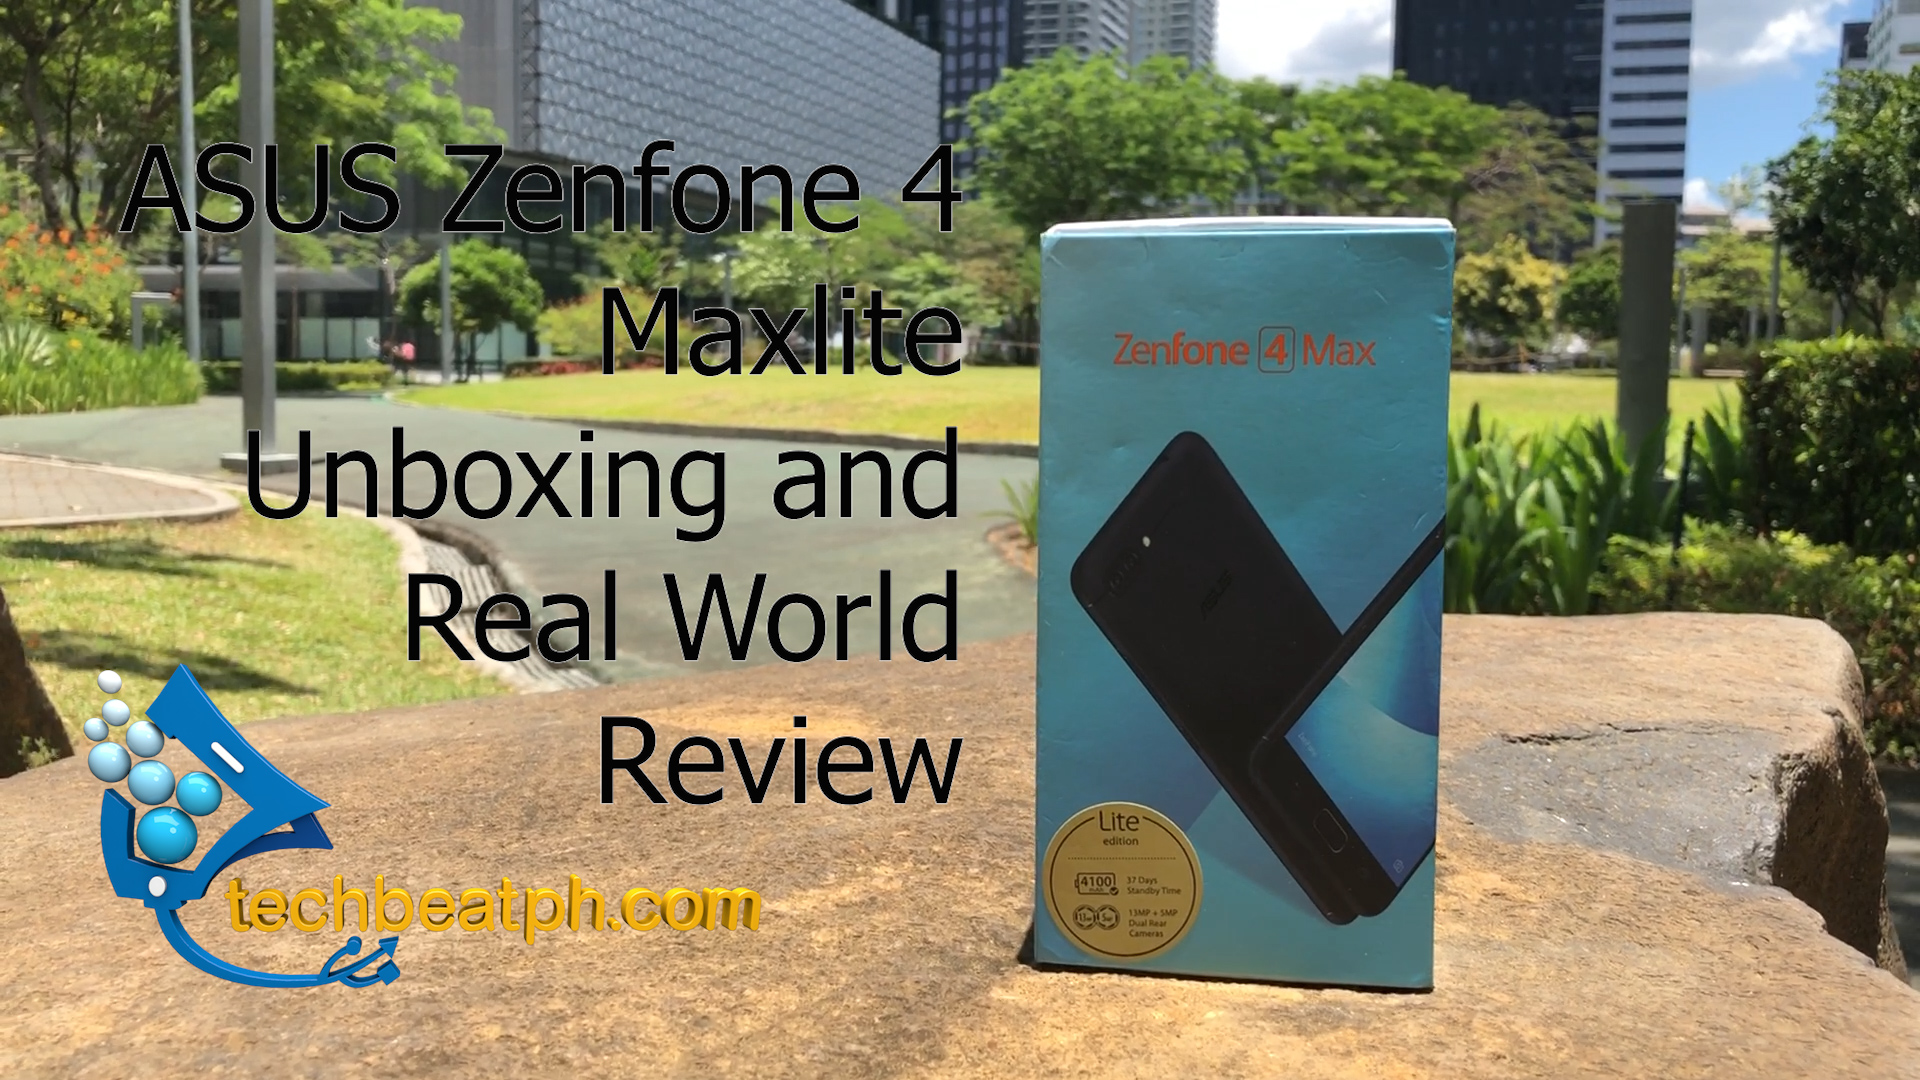 ASUS Zenfone4 MaxLite Unboxing and Review